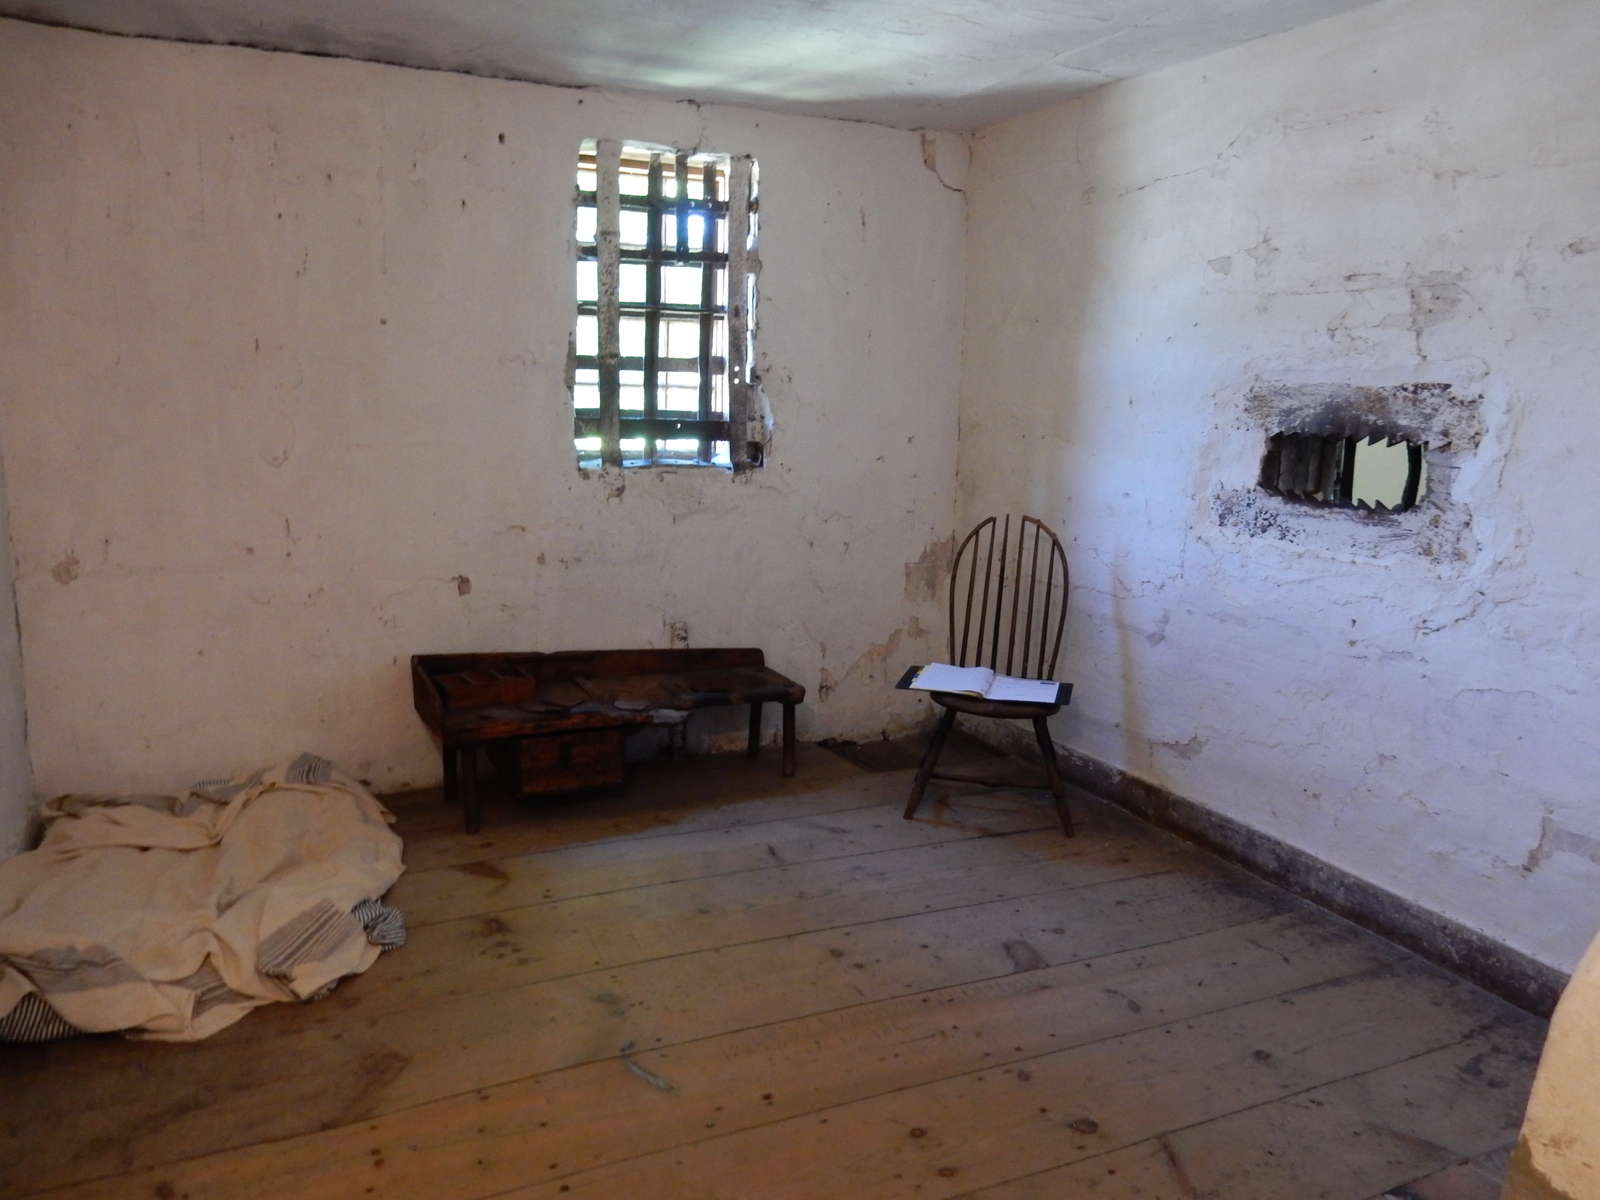 A cell within the Old Gaol looks about as one would expect.